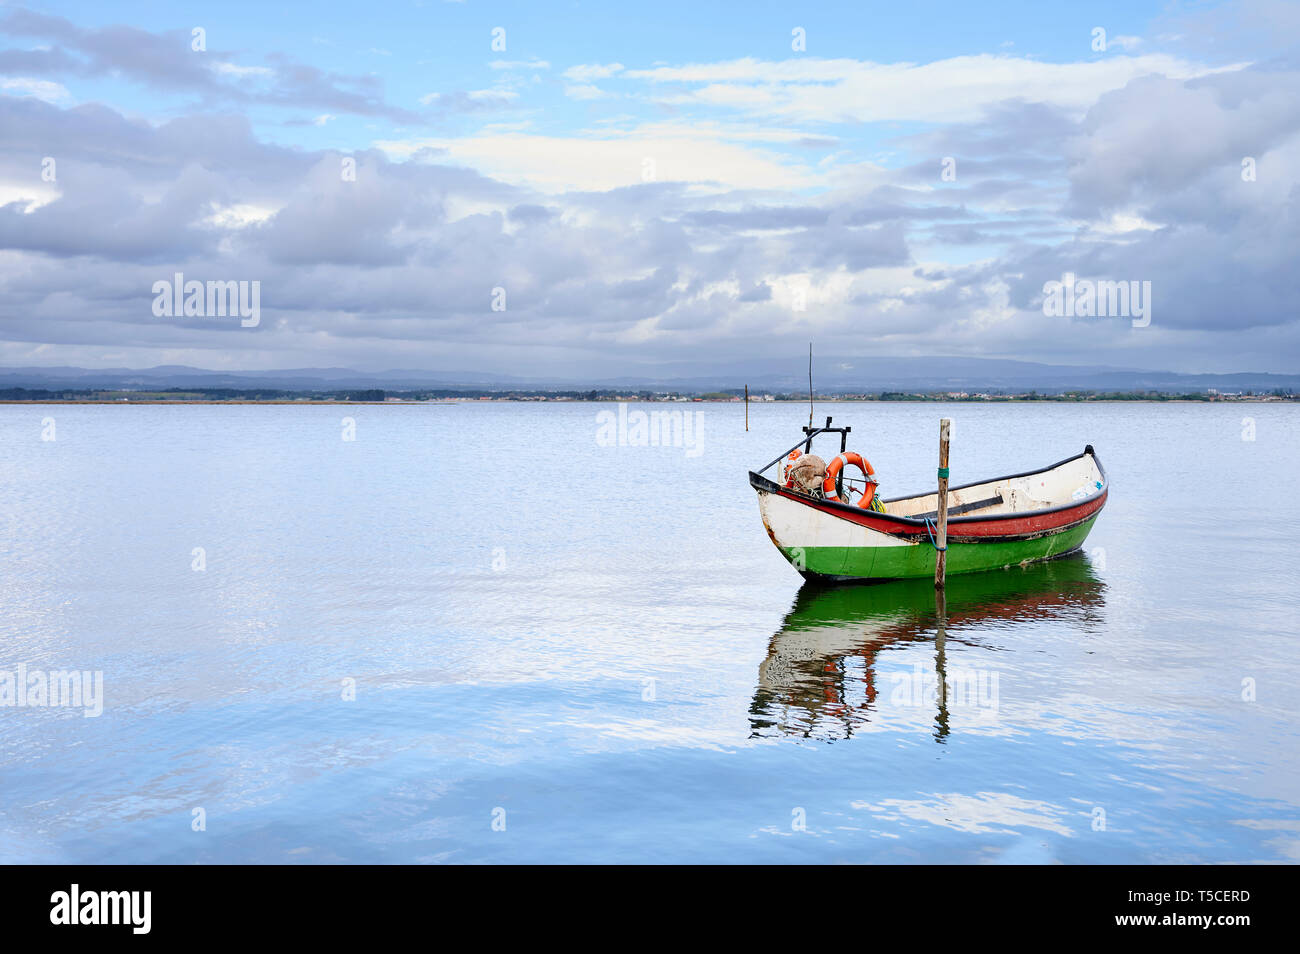 Green boat anchored near the kake coast under yhe cloudy sky at Torreira, Portugal - Stock Image